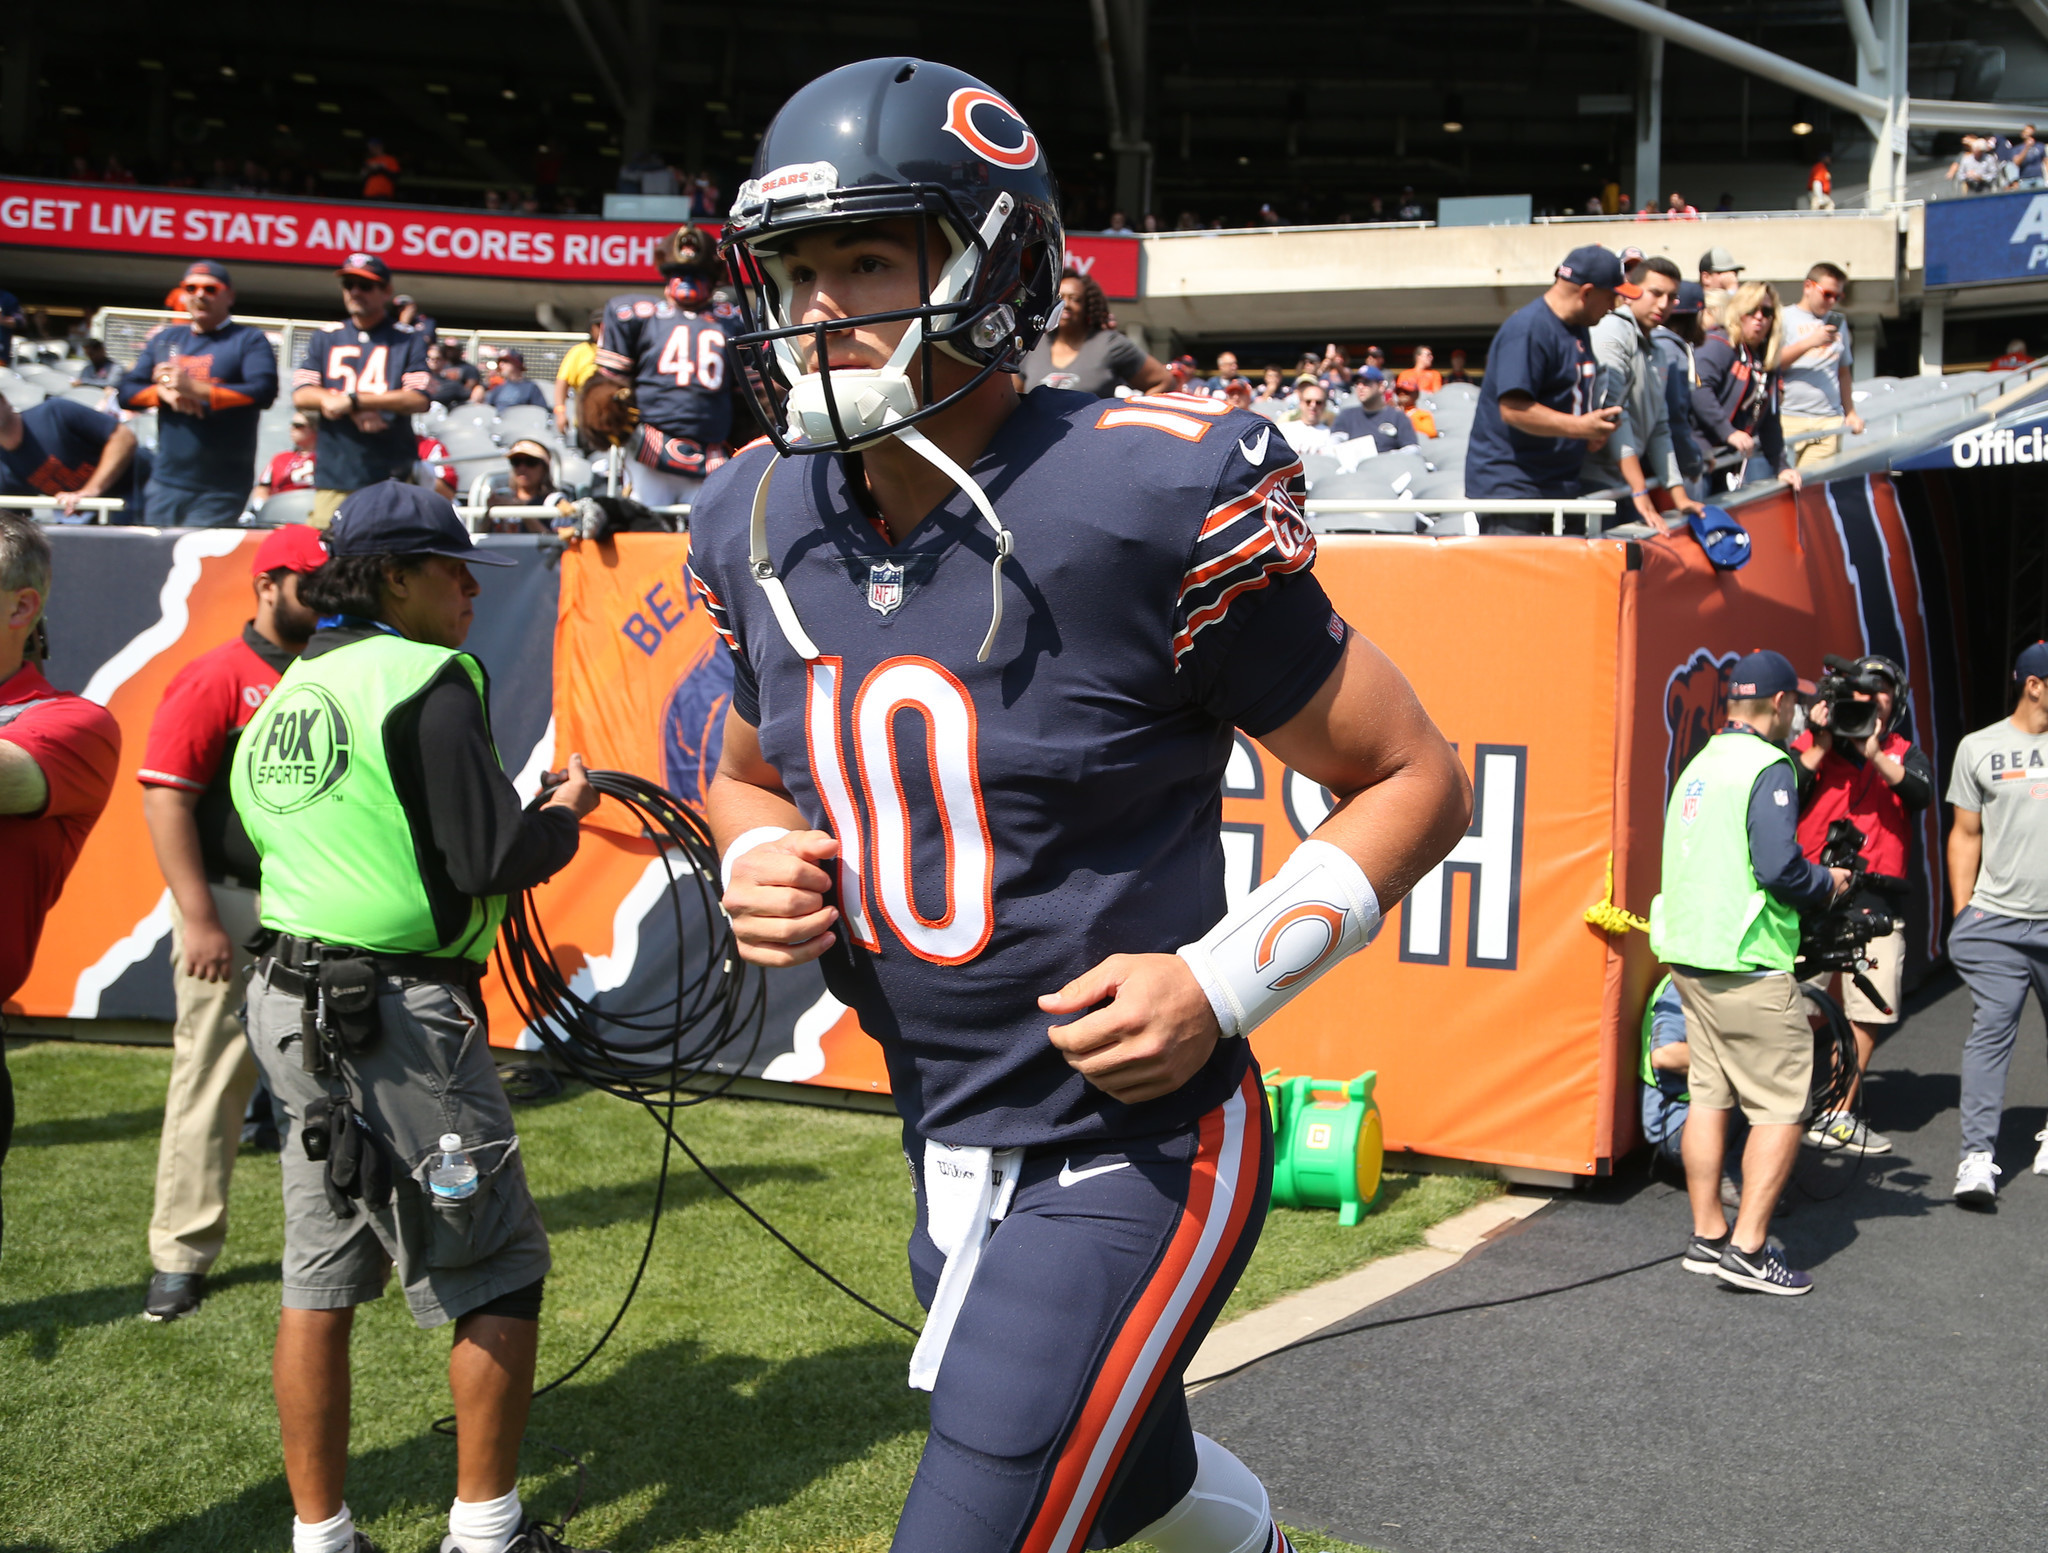 Ct-mike-glennon-mitch-trubisky-biggs-spt-1002-20171001